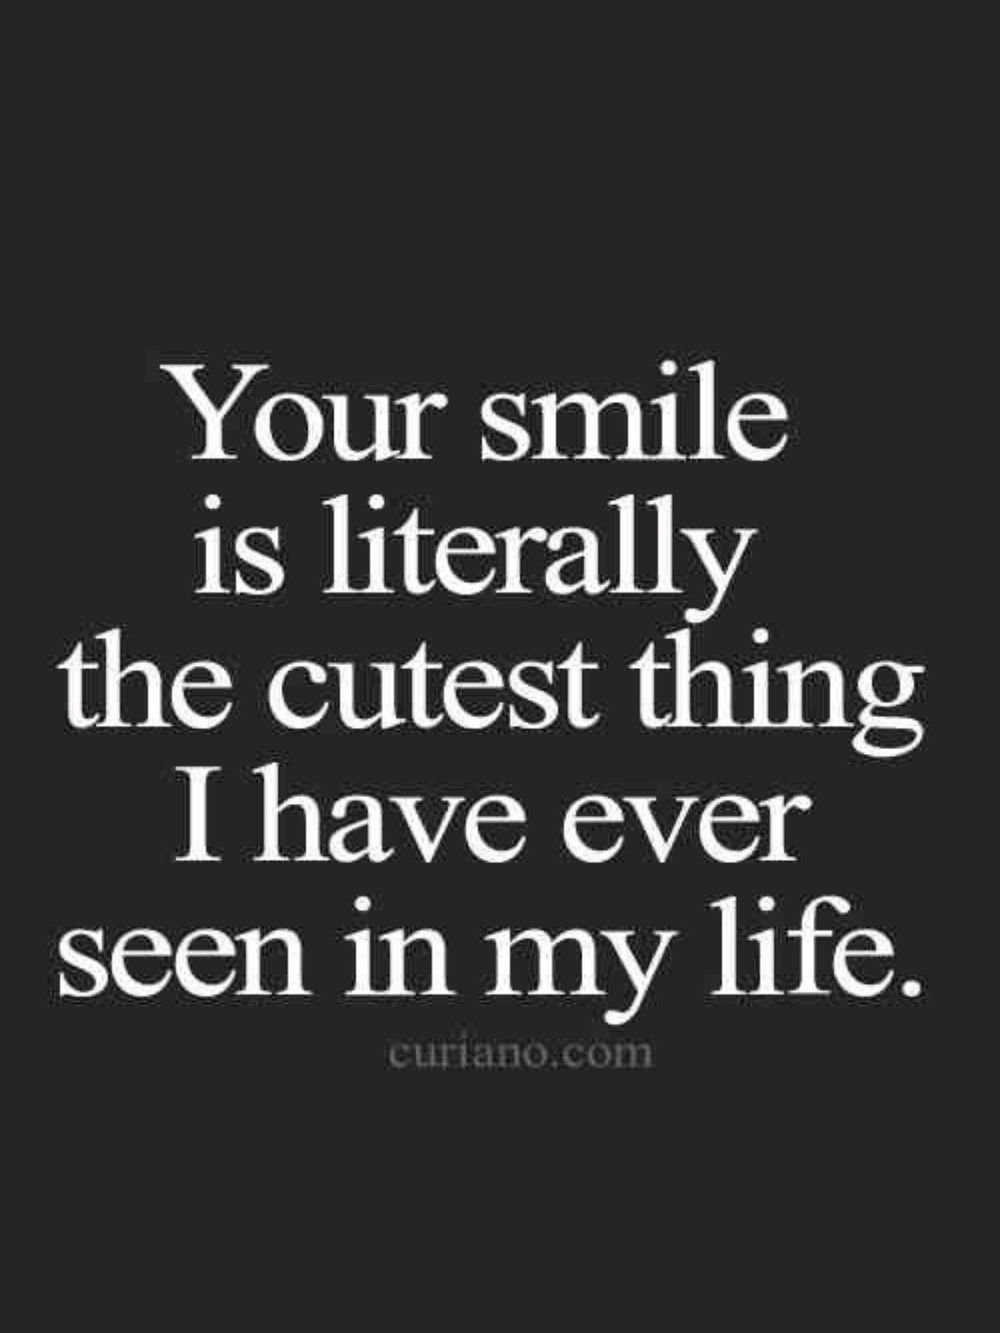 Image of: Him Flirty relationship quotes relationshipgoals Pinterest Flirty relationship quotes relationshipgoals Love Romance